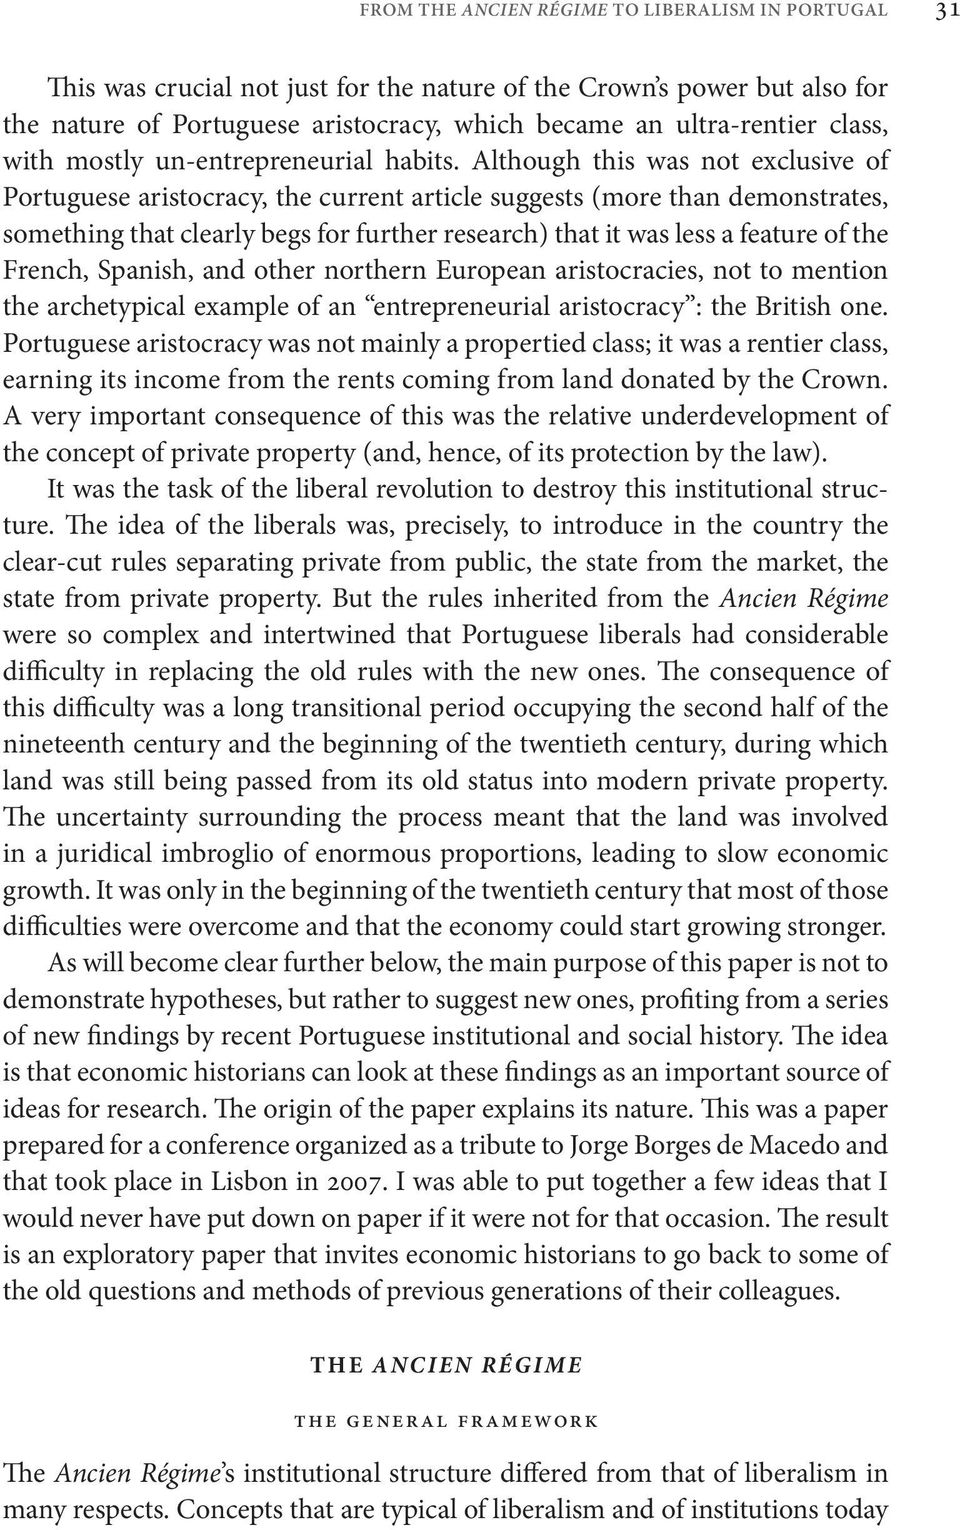 Although this was not exclusive of Portuguese aristocracy, the current article suggests (more than demonstrates, something that clearly begs for further research) that it was less a feature of the